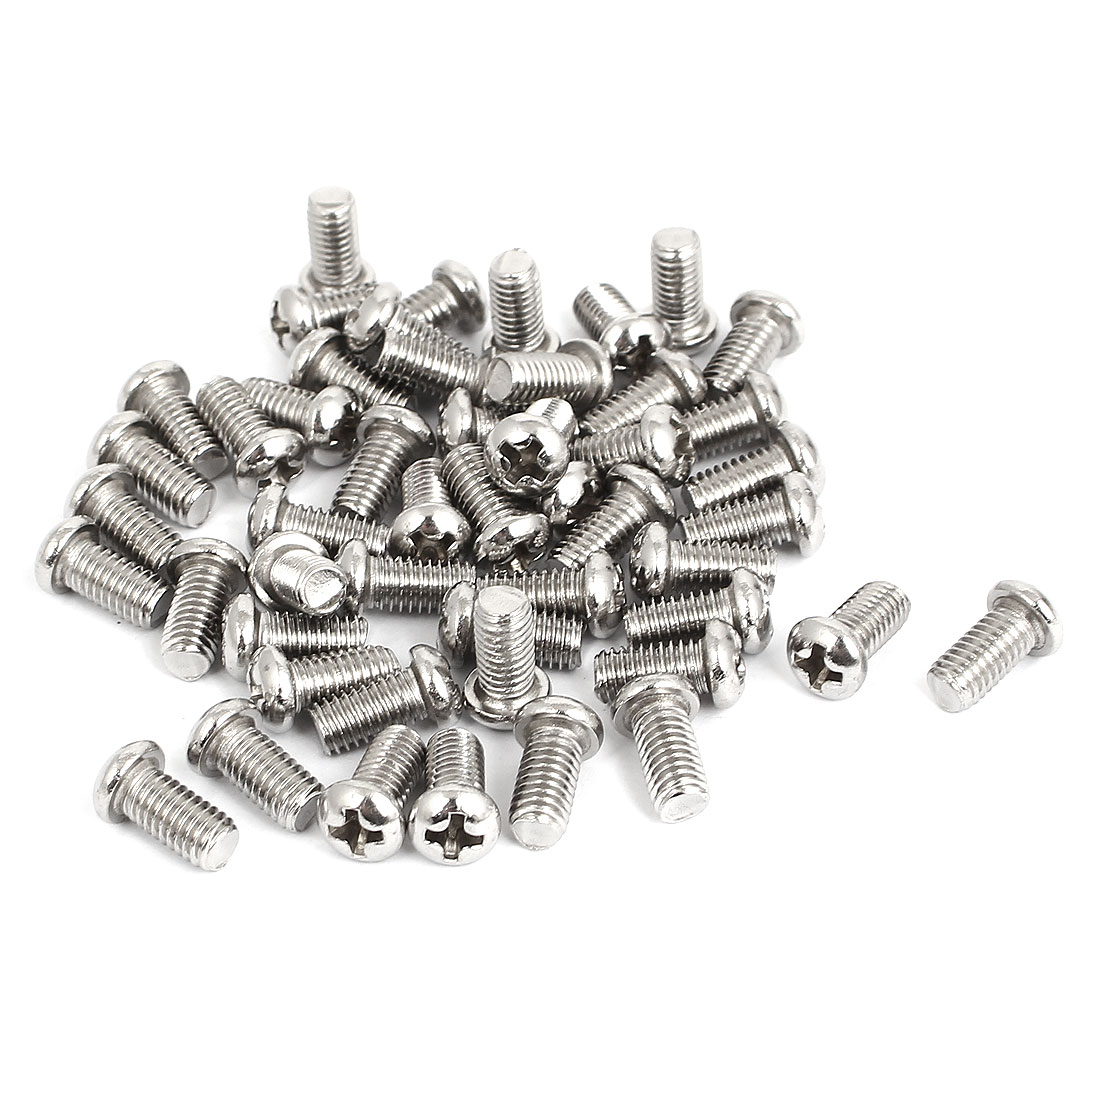 M5x10mm Stainless Steel Phillips Round Pan Head Machine Screws 50pcs